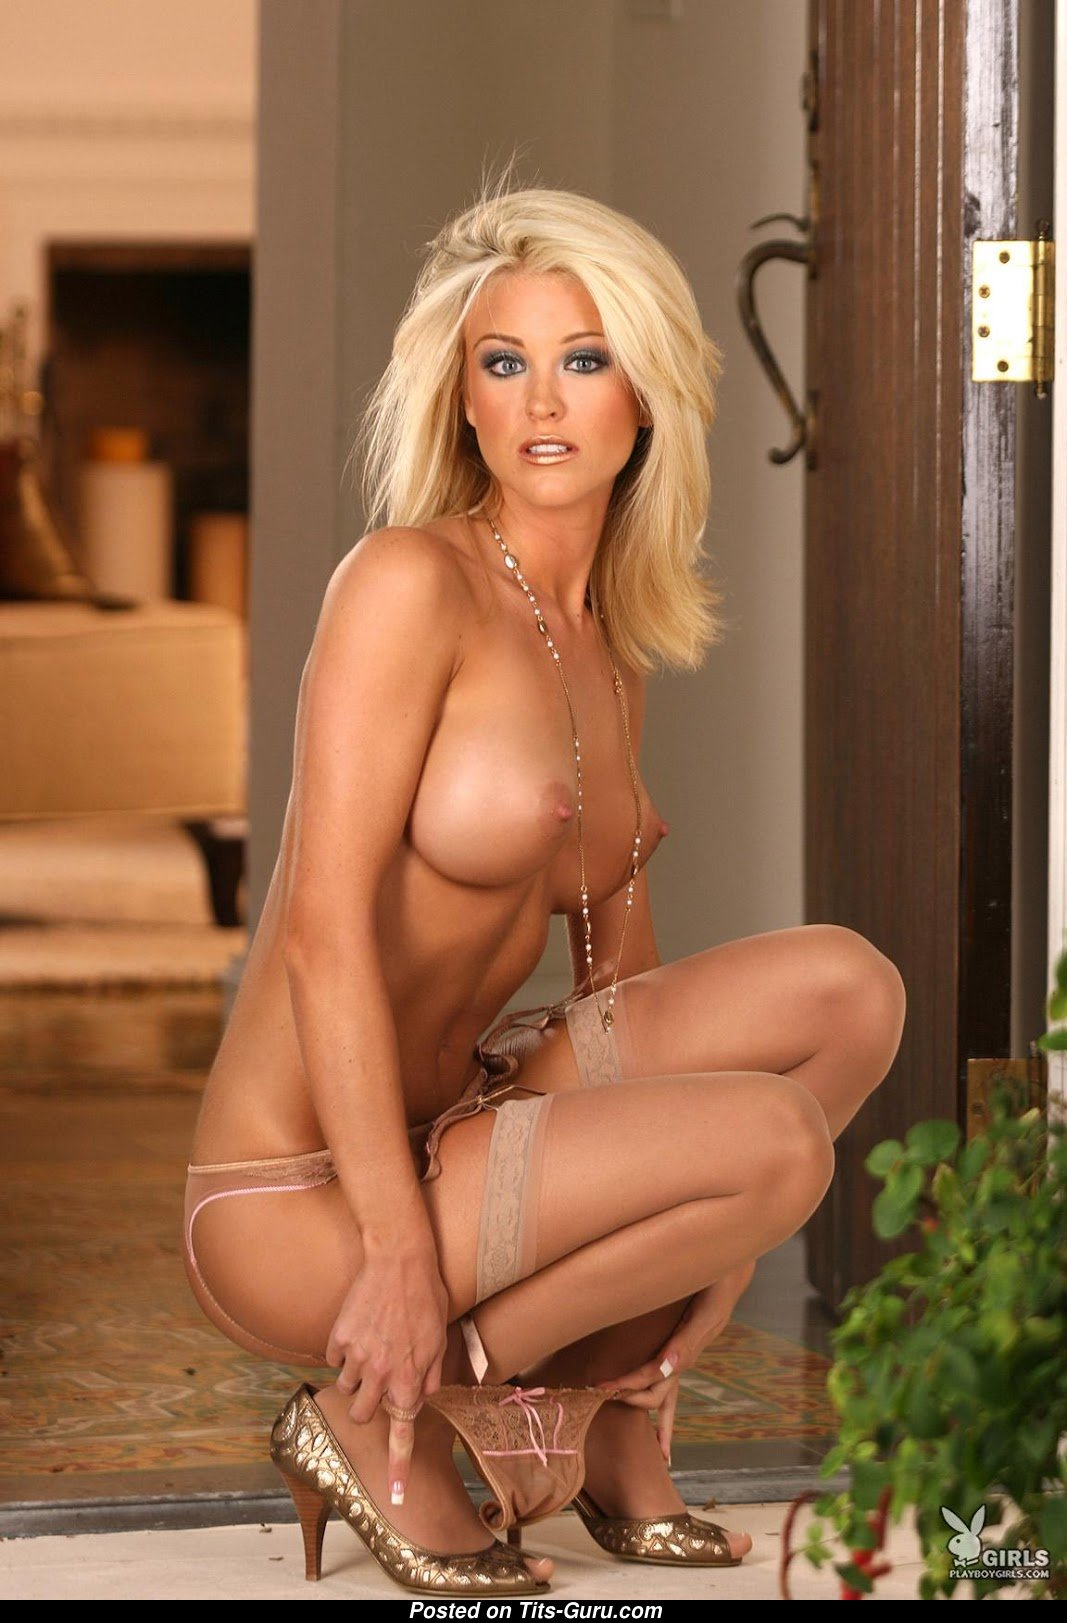 Ashley Lowe - Playboy Blonde With Bald C Size Breasts In -7442